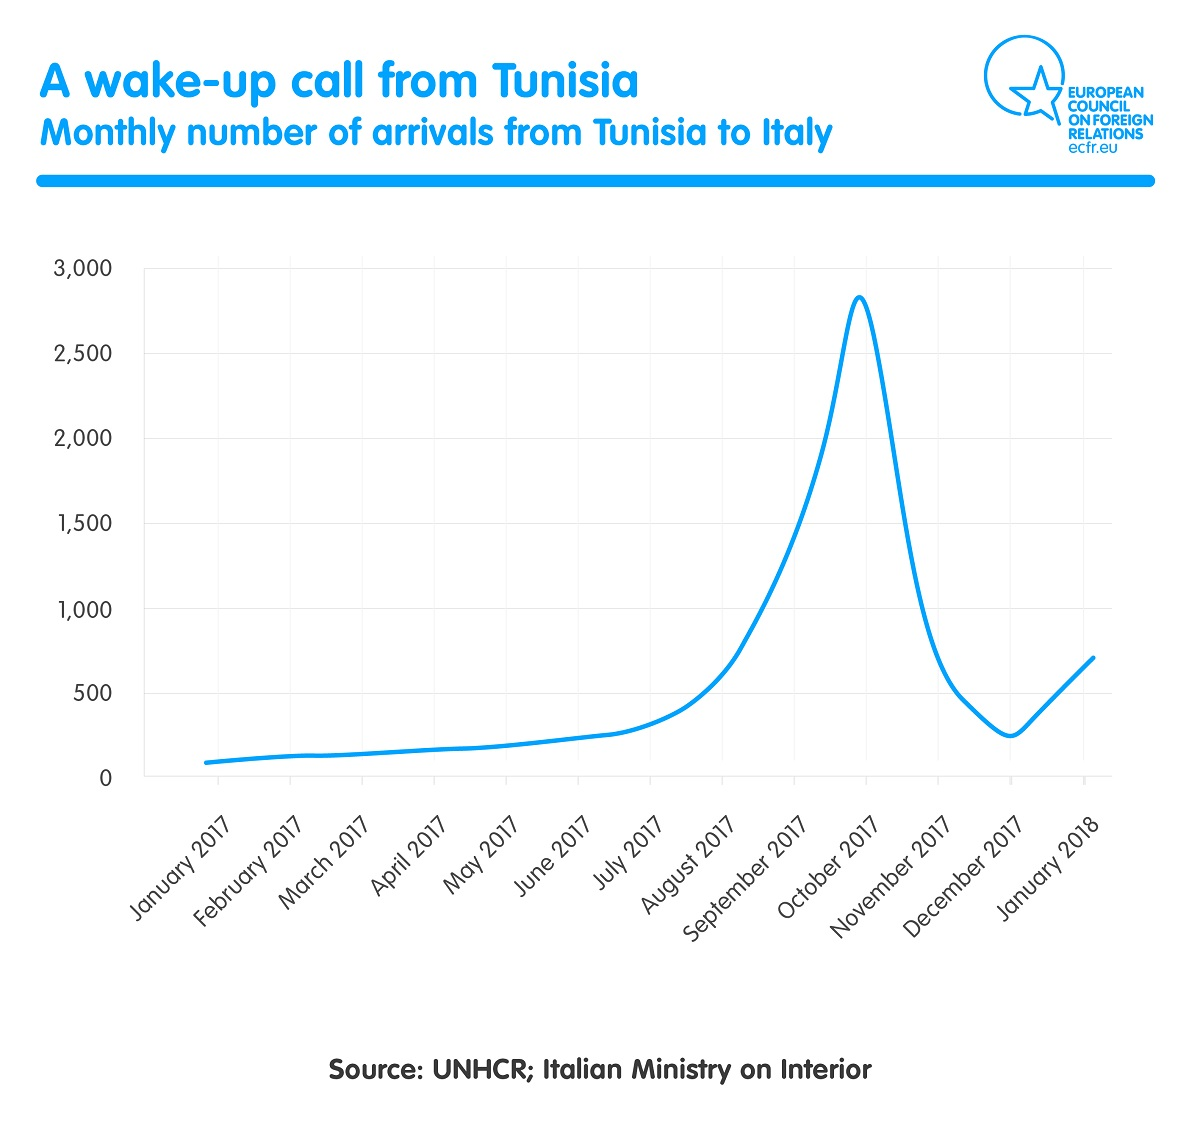 monthly numbers of arrivals from Tunisia to Italy